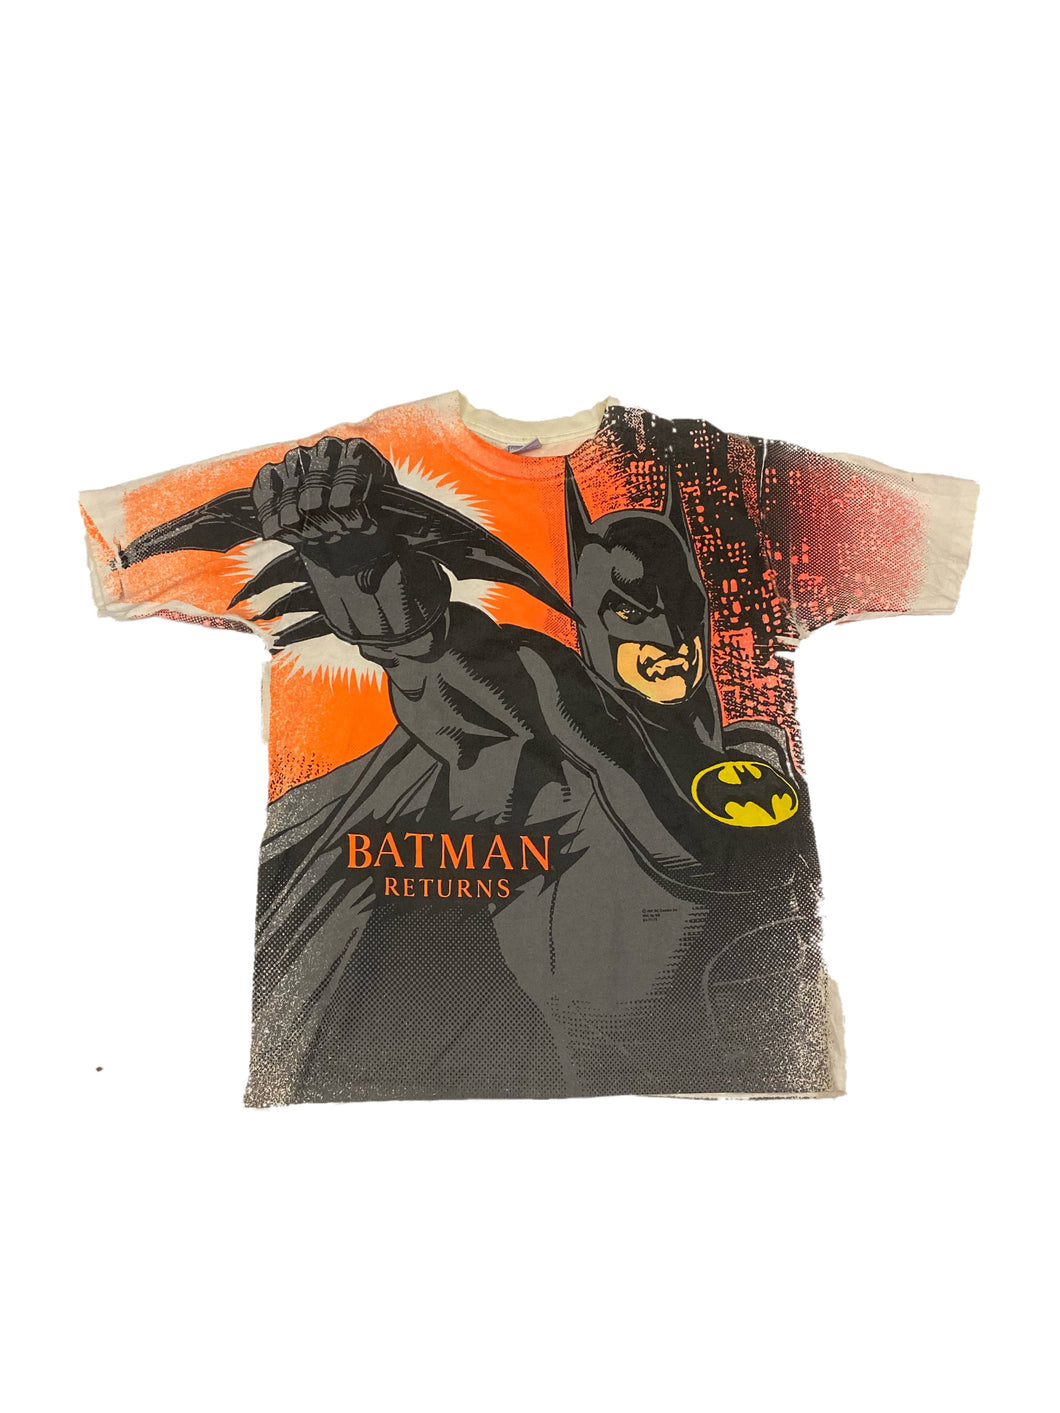 Batman Returns All Over Print Tee